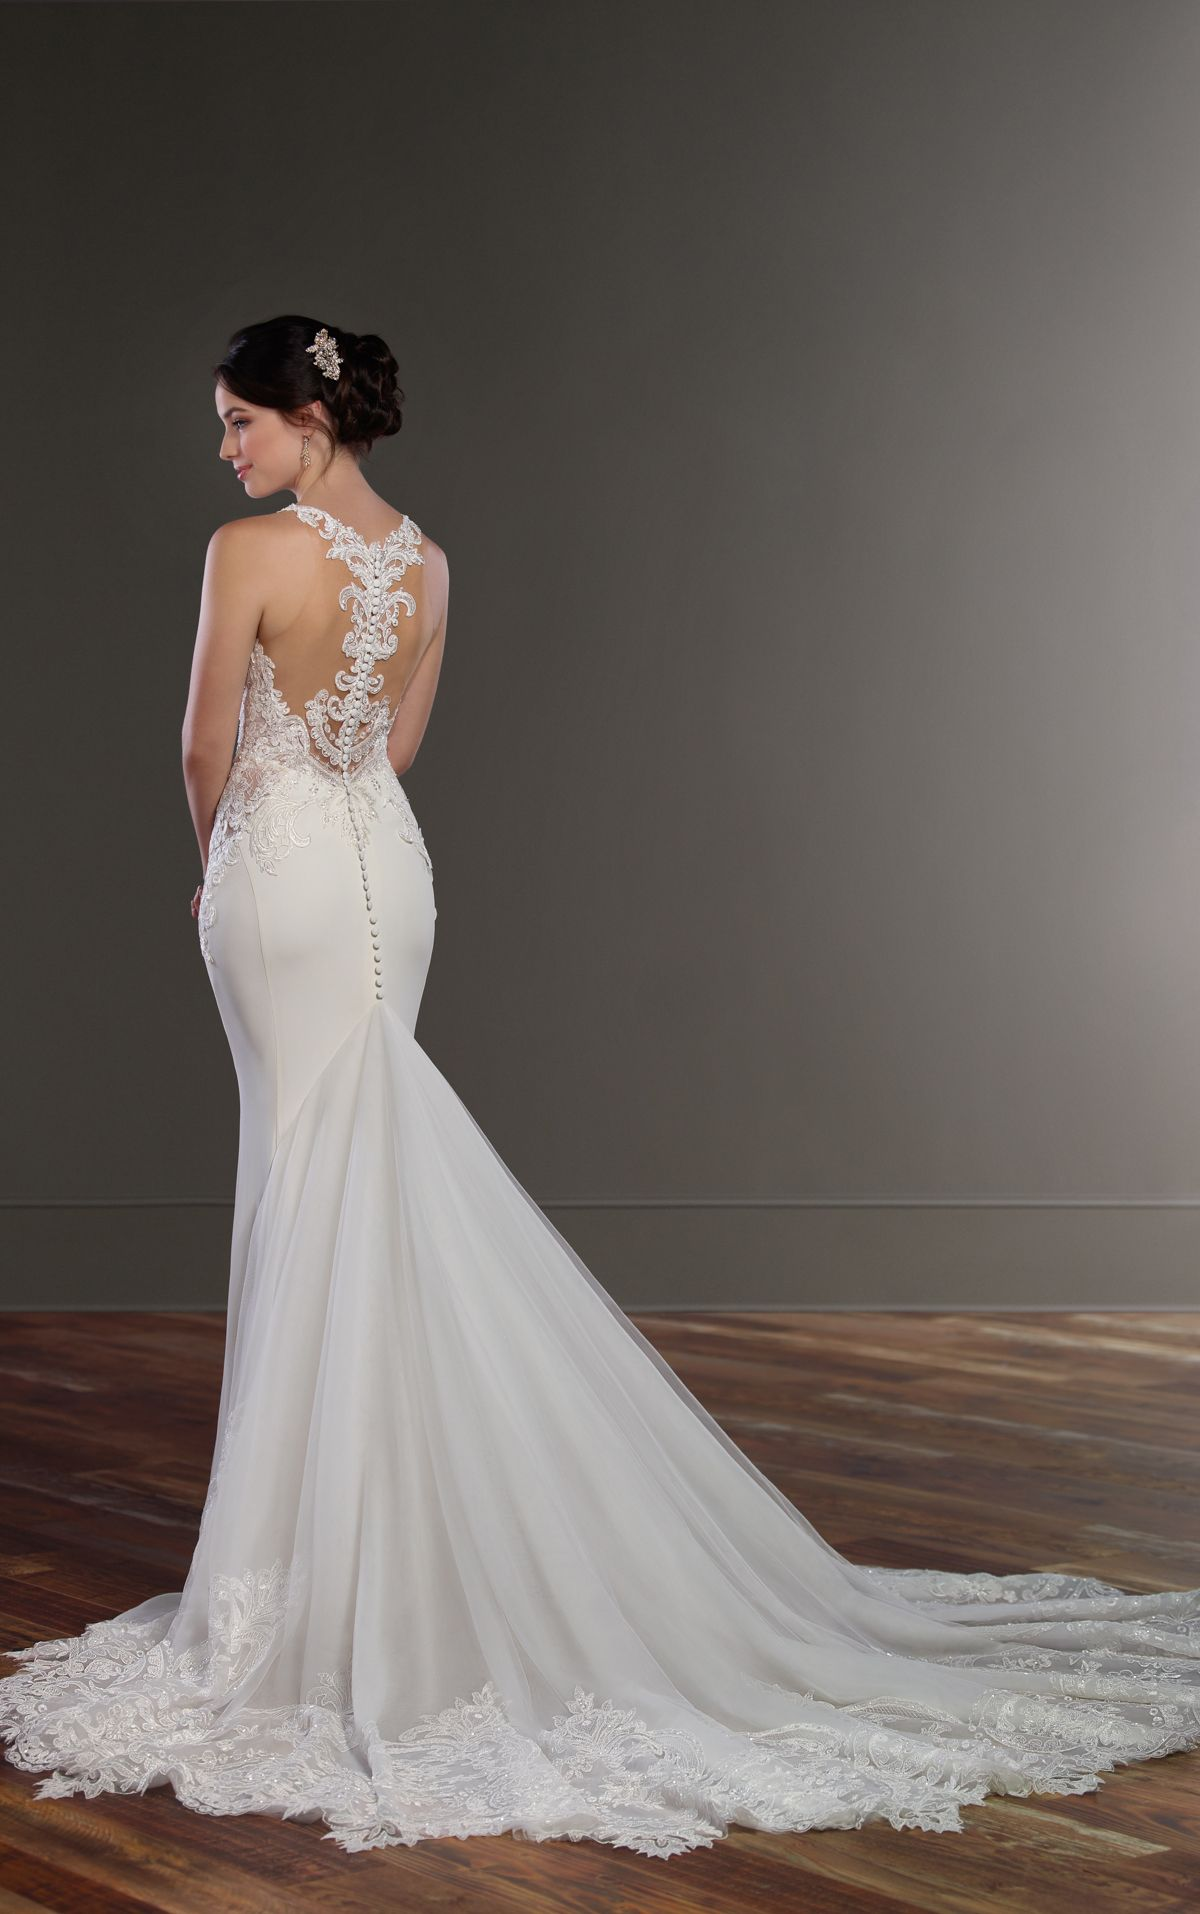 Illusion Racerback Wedding Dress with High Neck | Wedding dress and ...